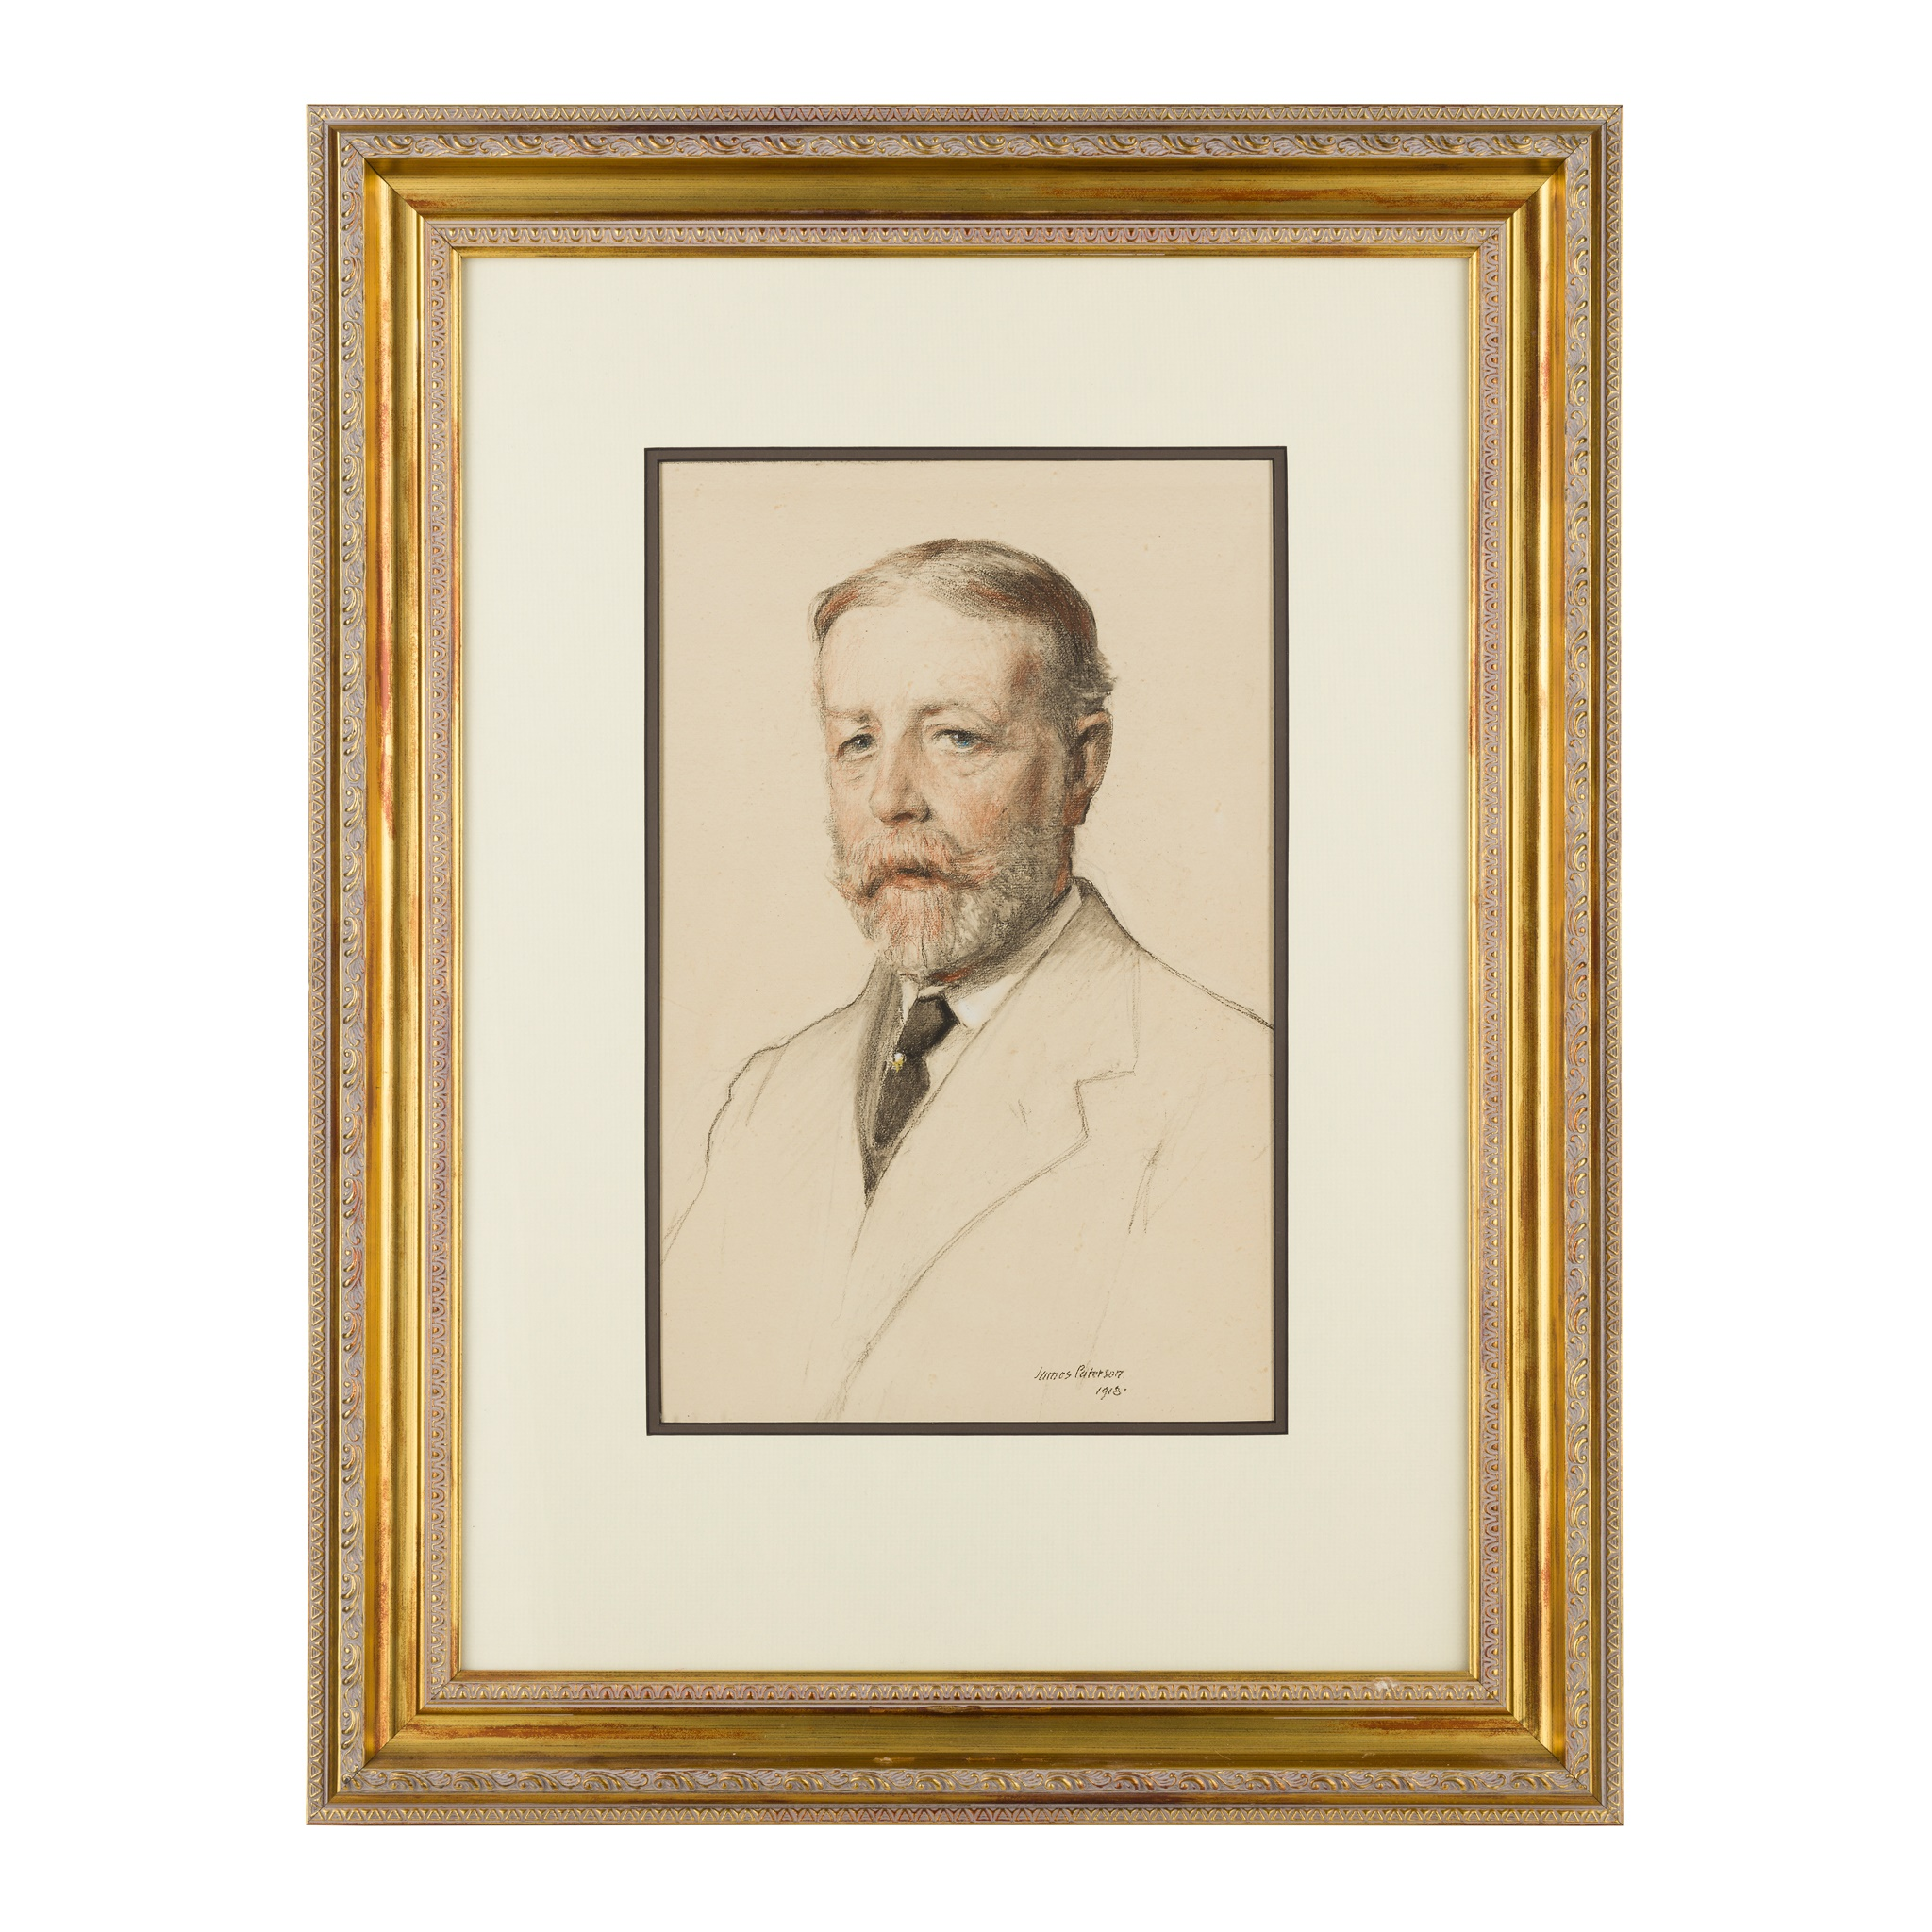 JAMES PATERSON R.S.W., R.S.A., R.W.S. (SCOTTISH 1854-1932) PORTRAIT OF J.COOK- 18 INDIA STREET - Image 2 of 3